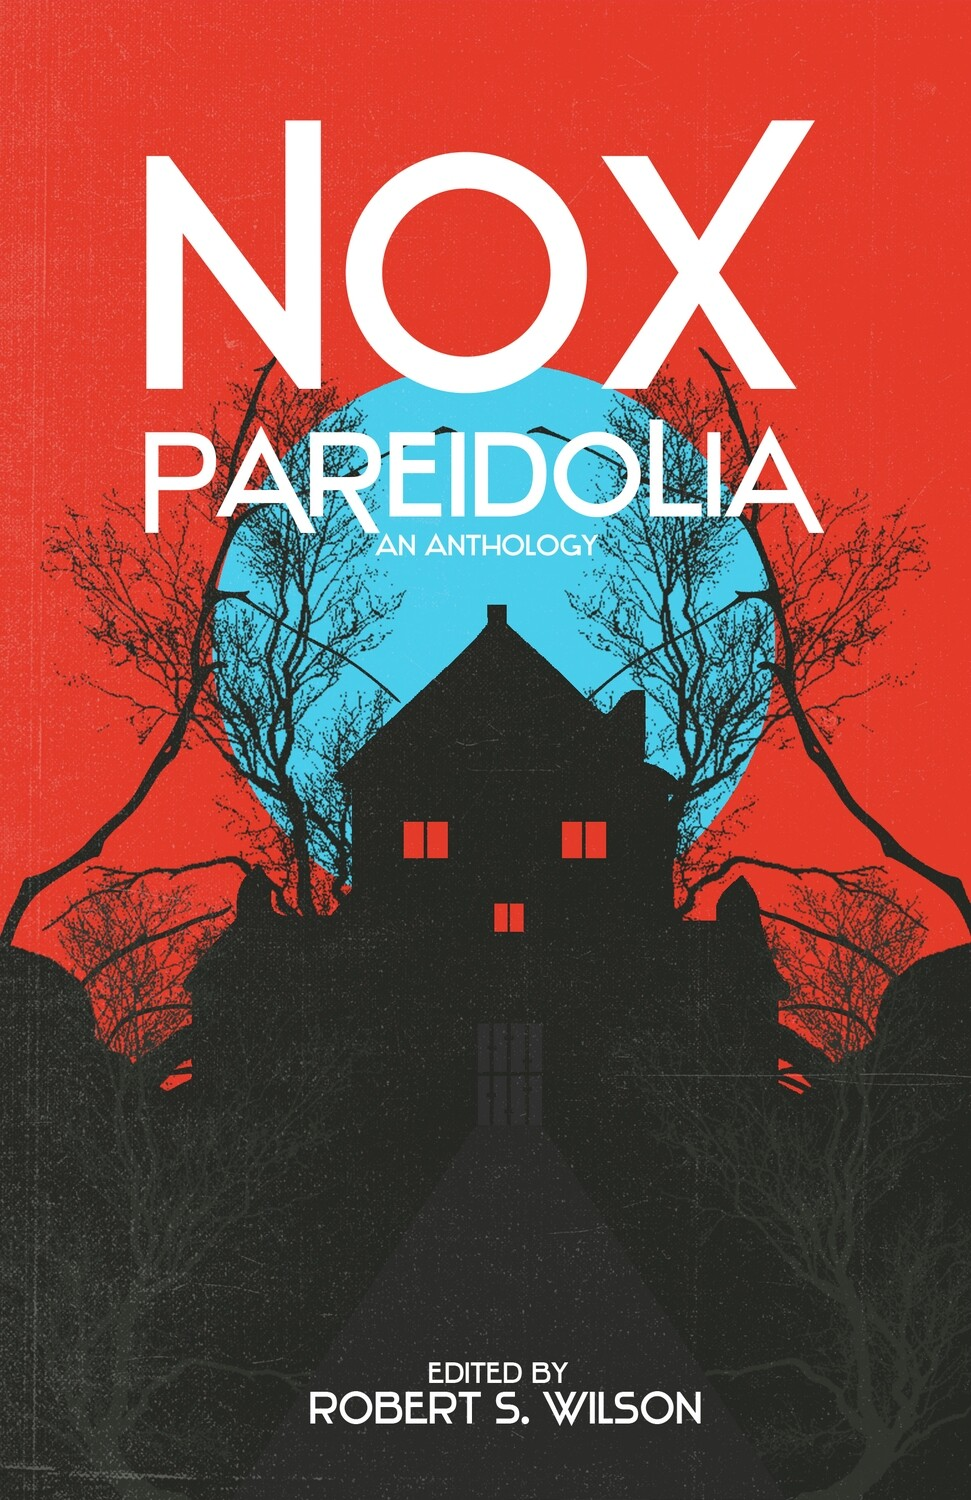 Nox Pareidolia edited by Robert S. Wilson (Trade Paperback Pre-order)